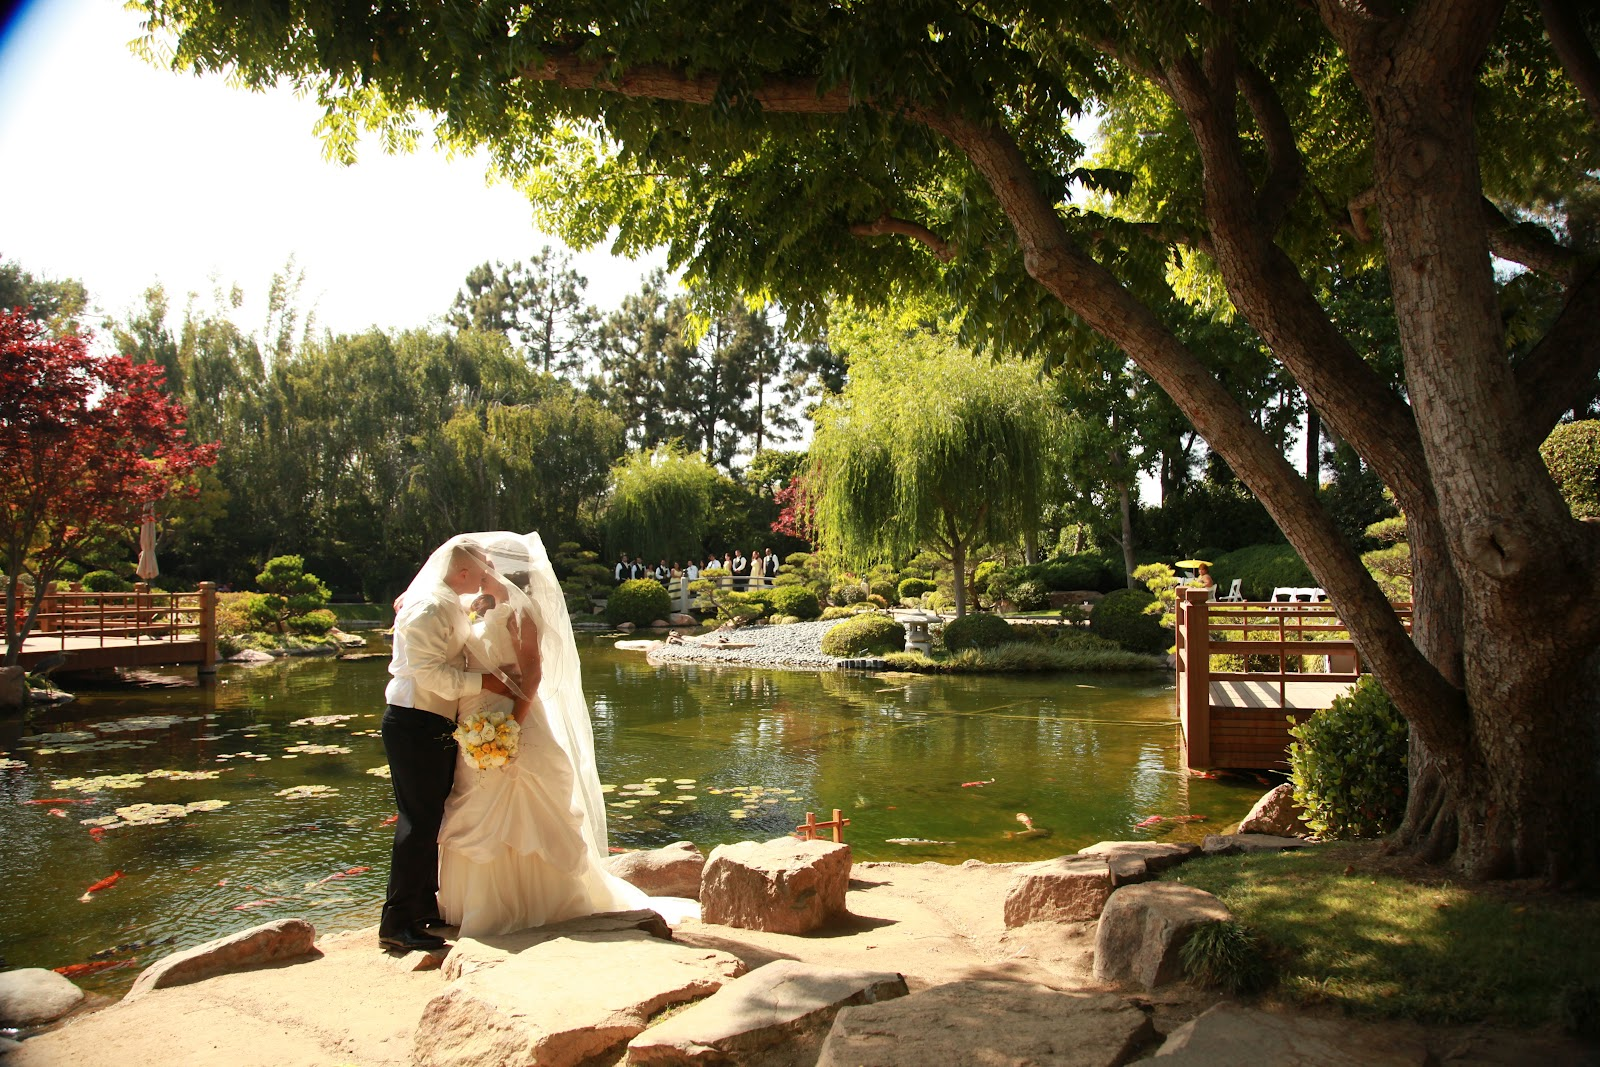 Enchanted Portraiture: Steve and Justine at Cal State Long Beach ...